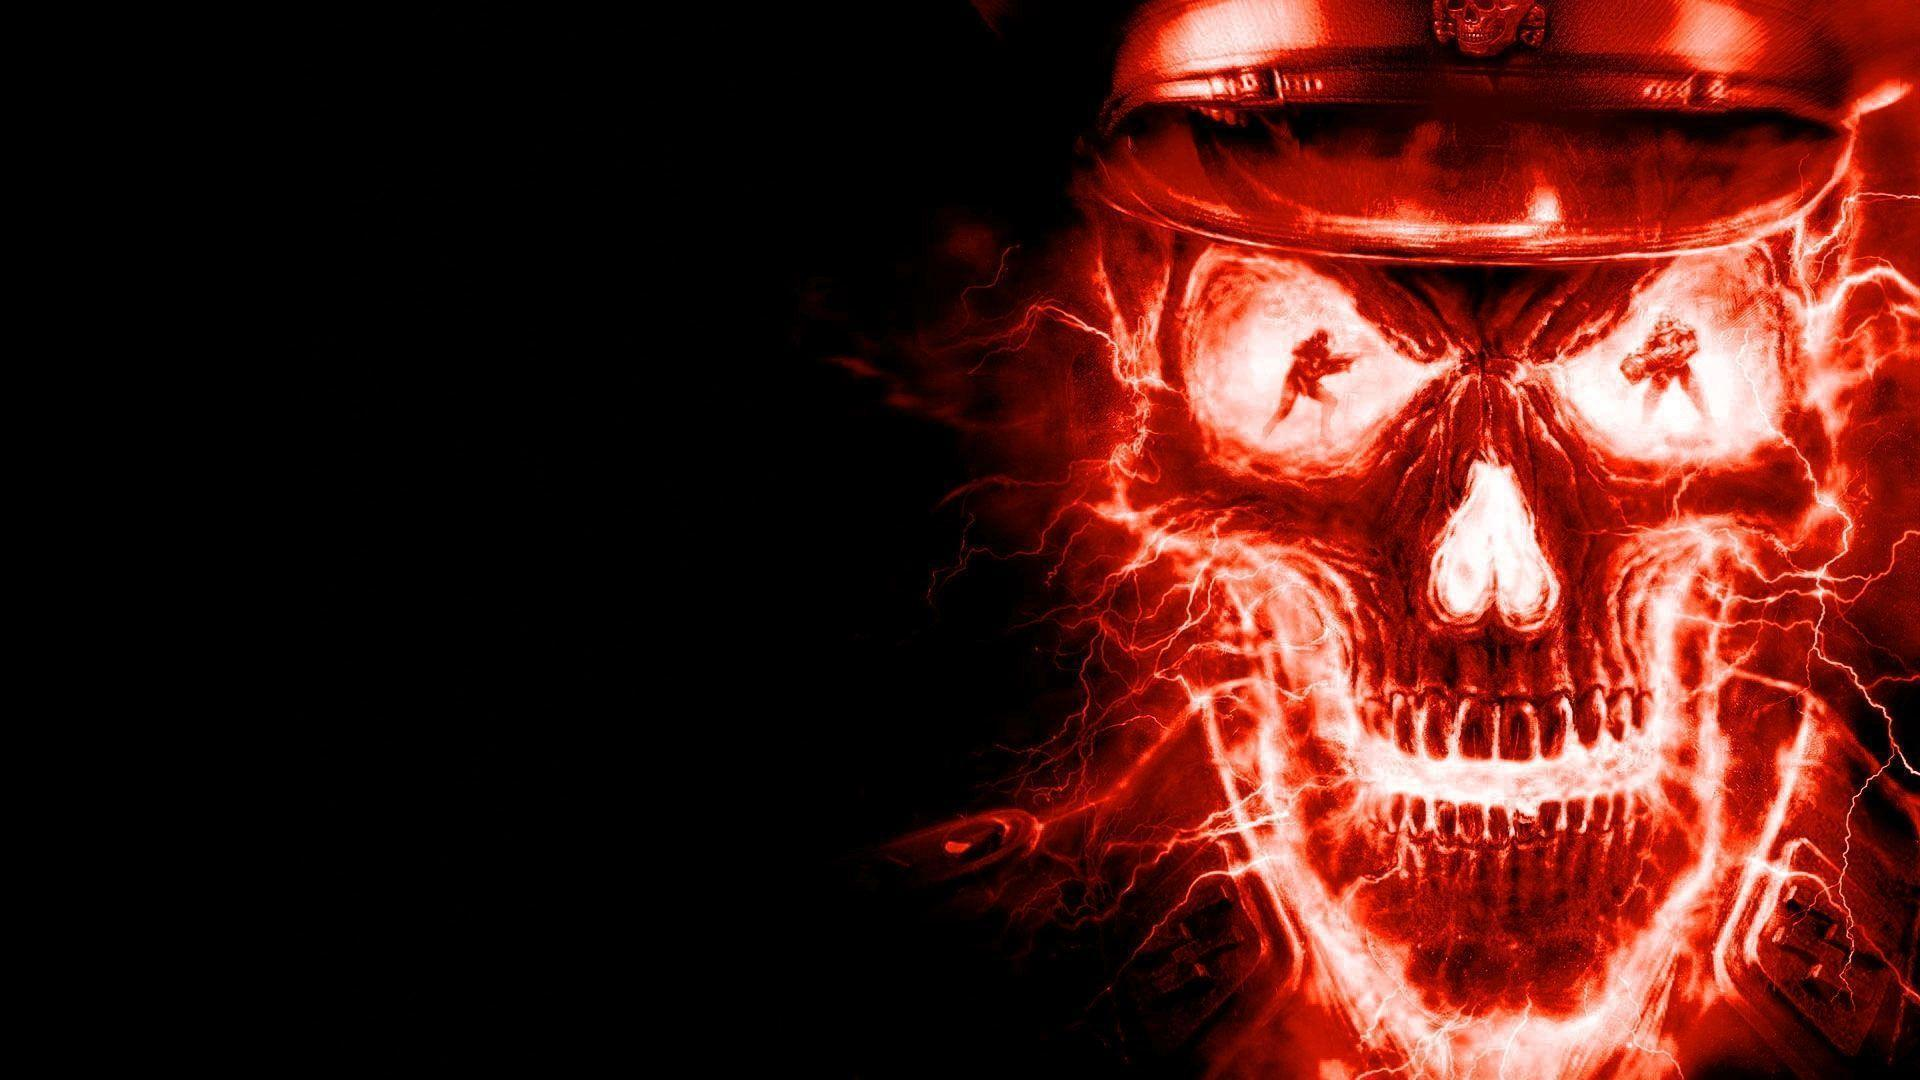 cool rock skull live wallpaper - photo #28